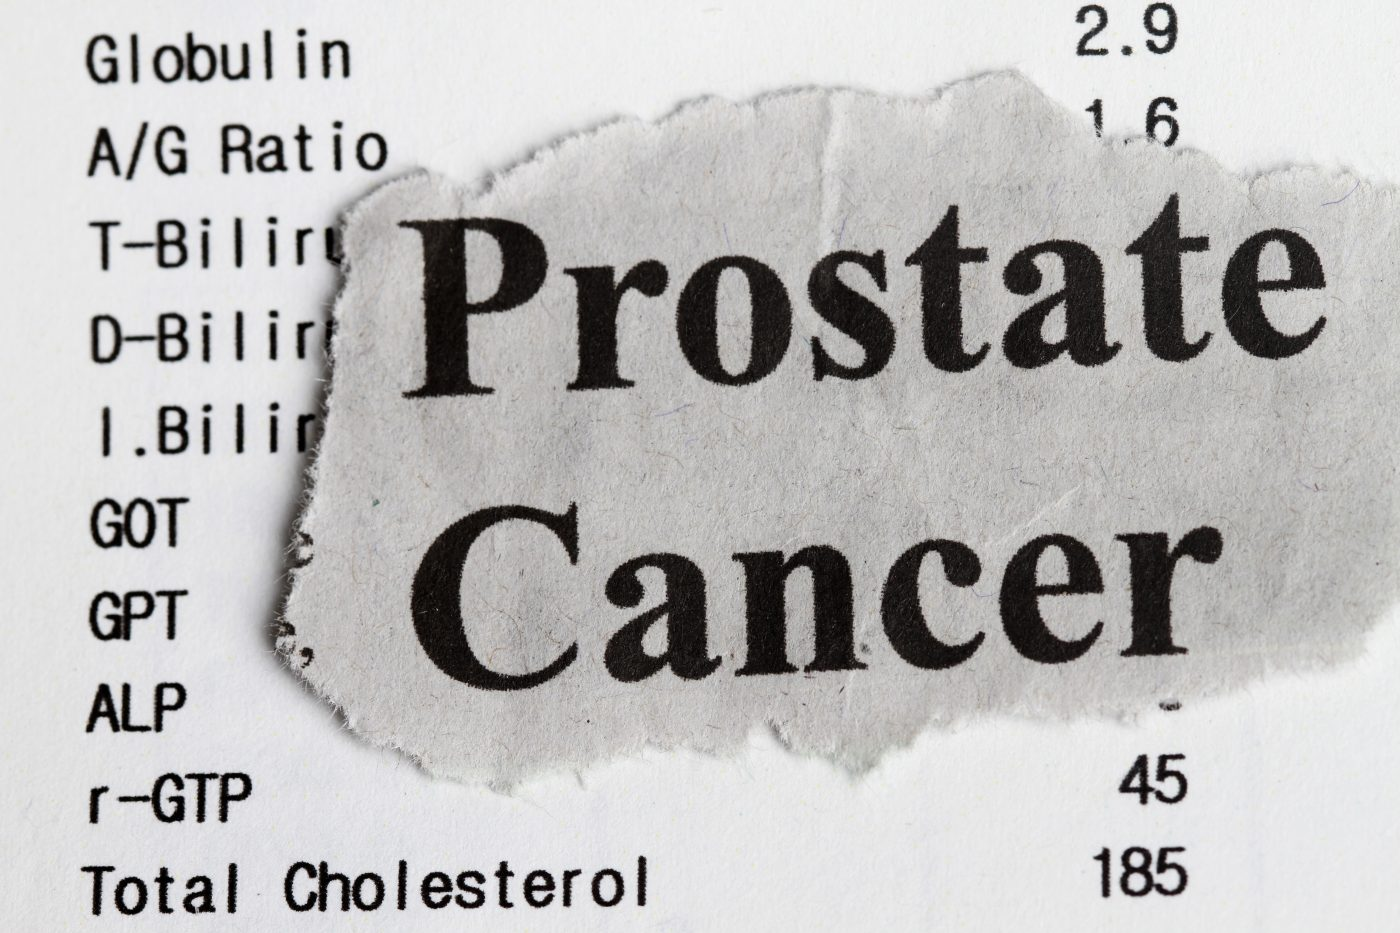 Prostate Cancer Screening Guidelines Can Confuse Clinicians